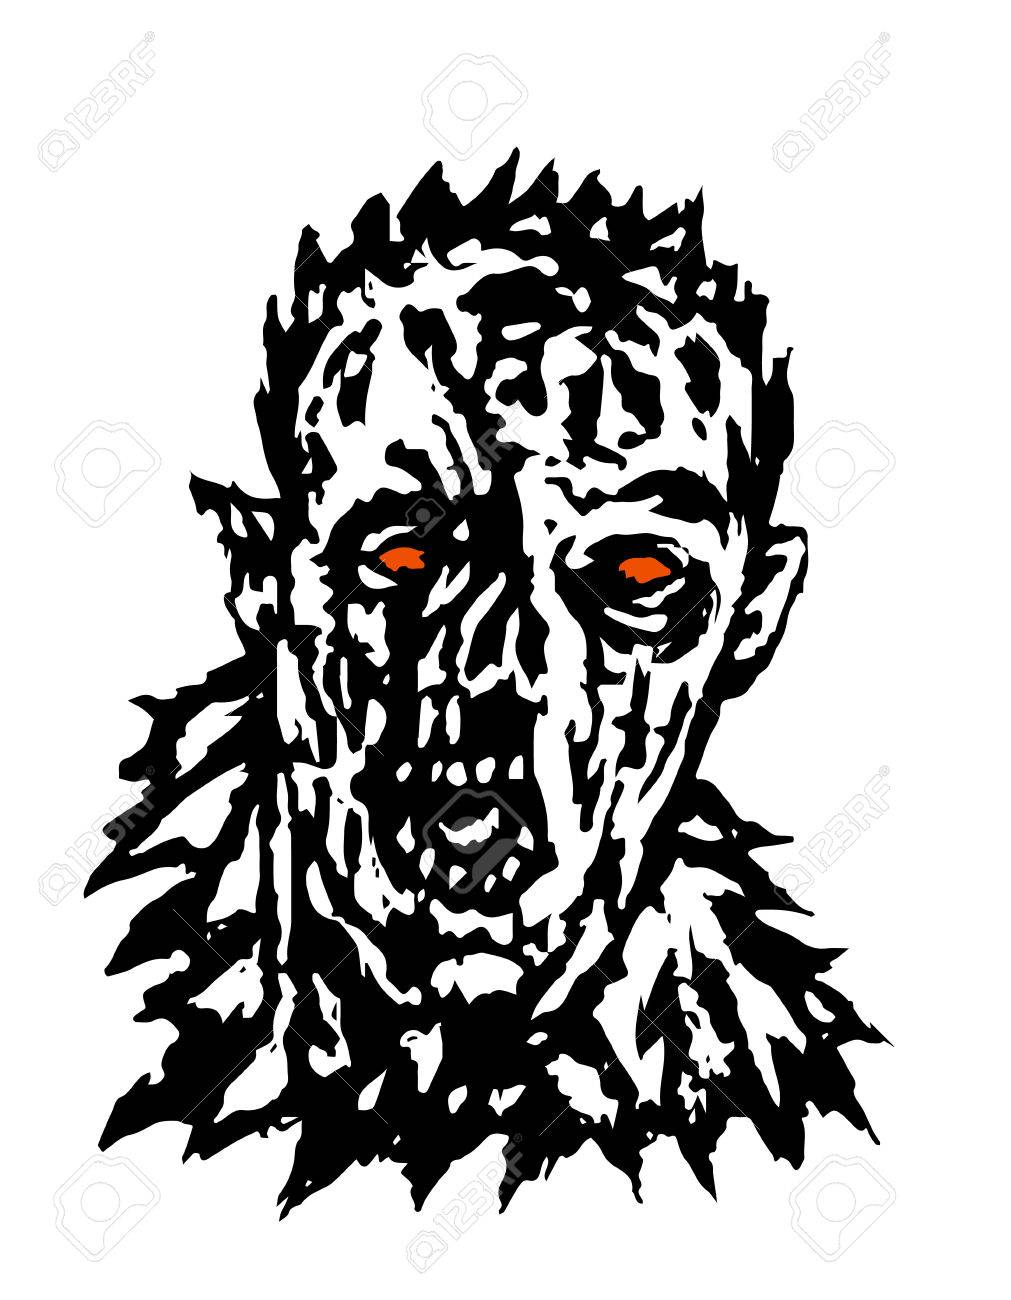 Wrath of the zombie. Vector illustration. Black and white colors.